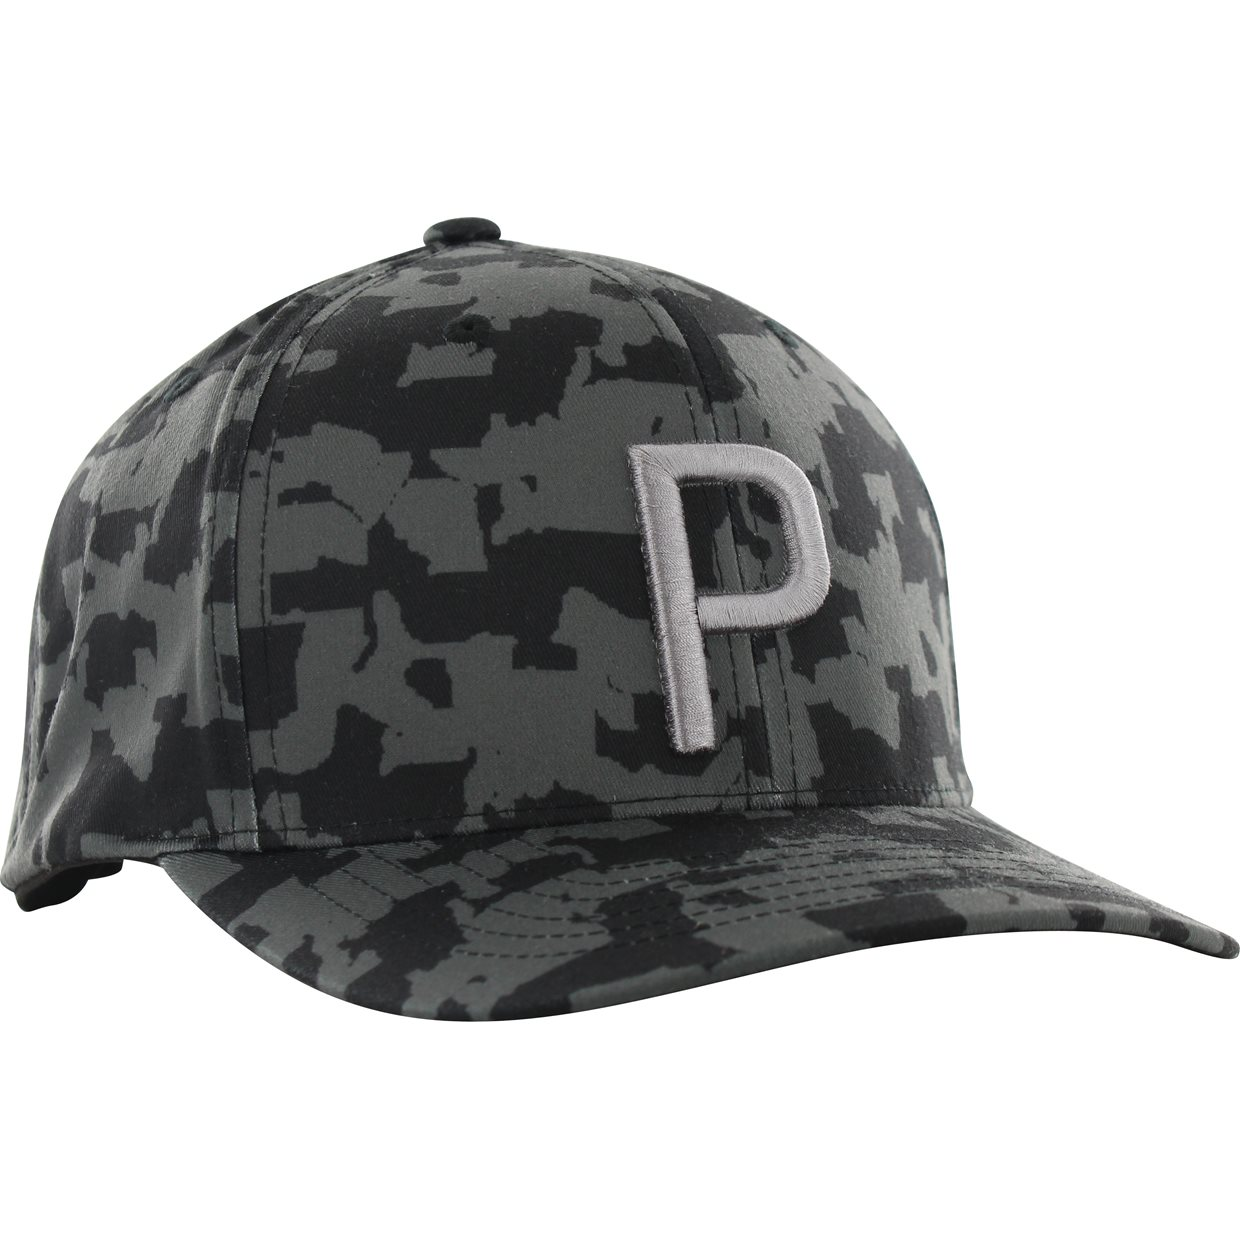 d62781e6b3759 Puma Union Camo 110 Snapback Headwear in Puma Black Camo